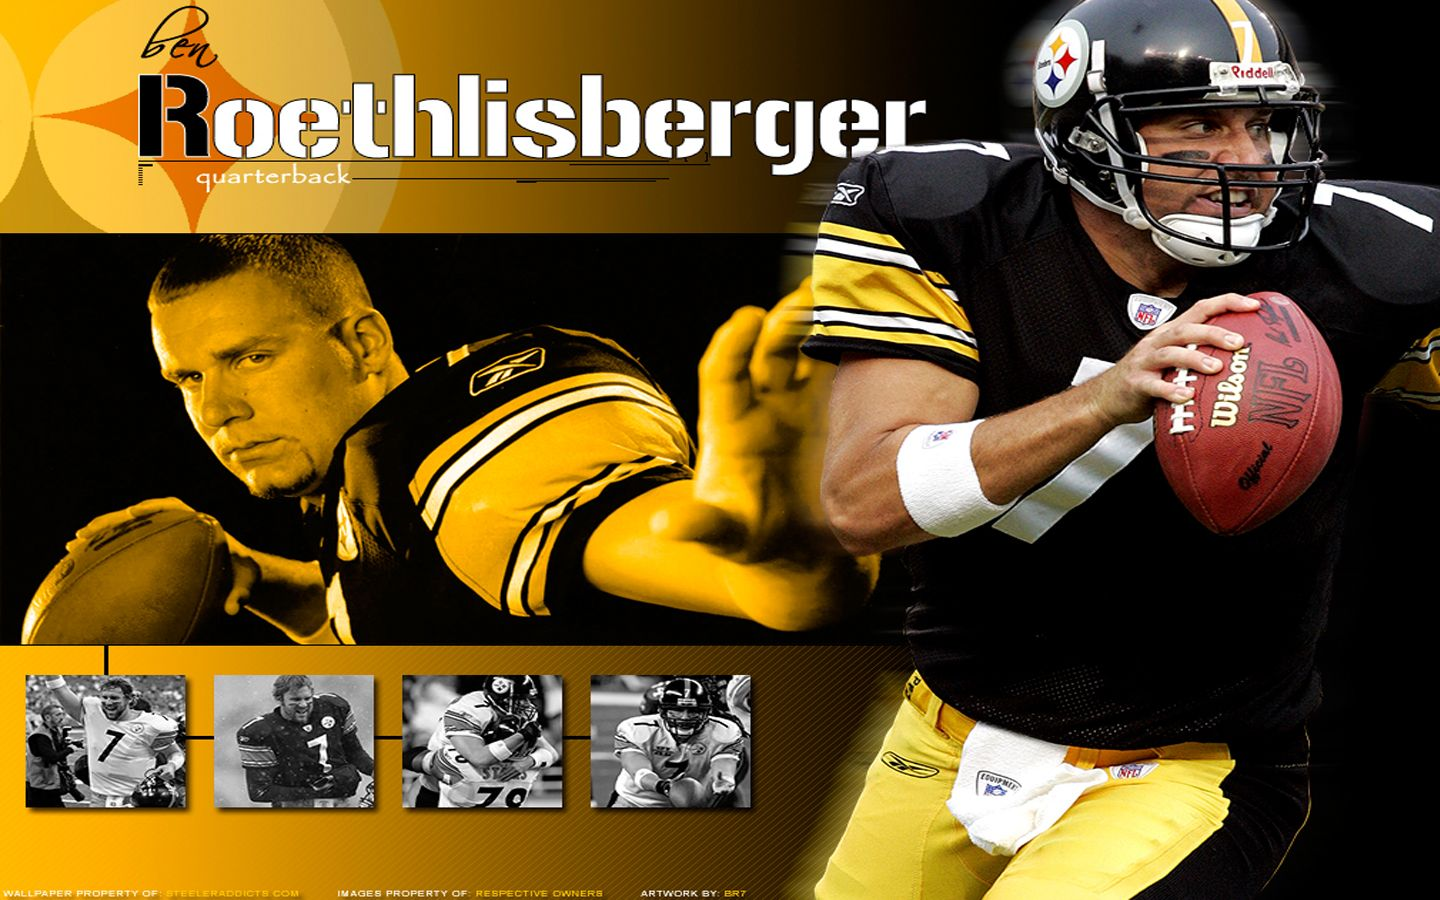 Nfl Wallpaper Ben Roethlisberger Wallpapers Pittsburgh Steelers Pittsburg Steelers Steelers